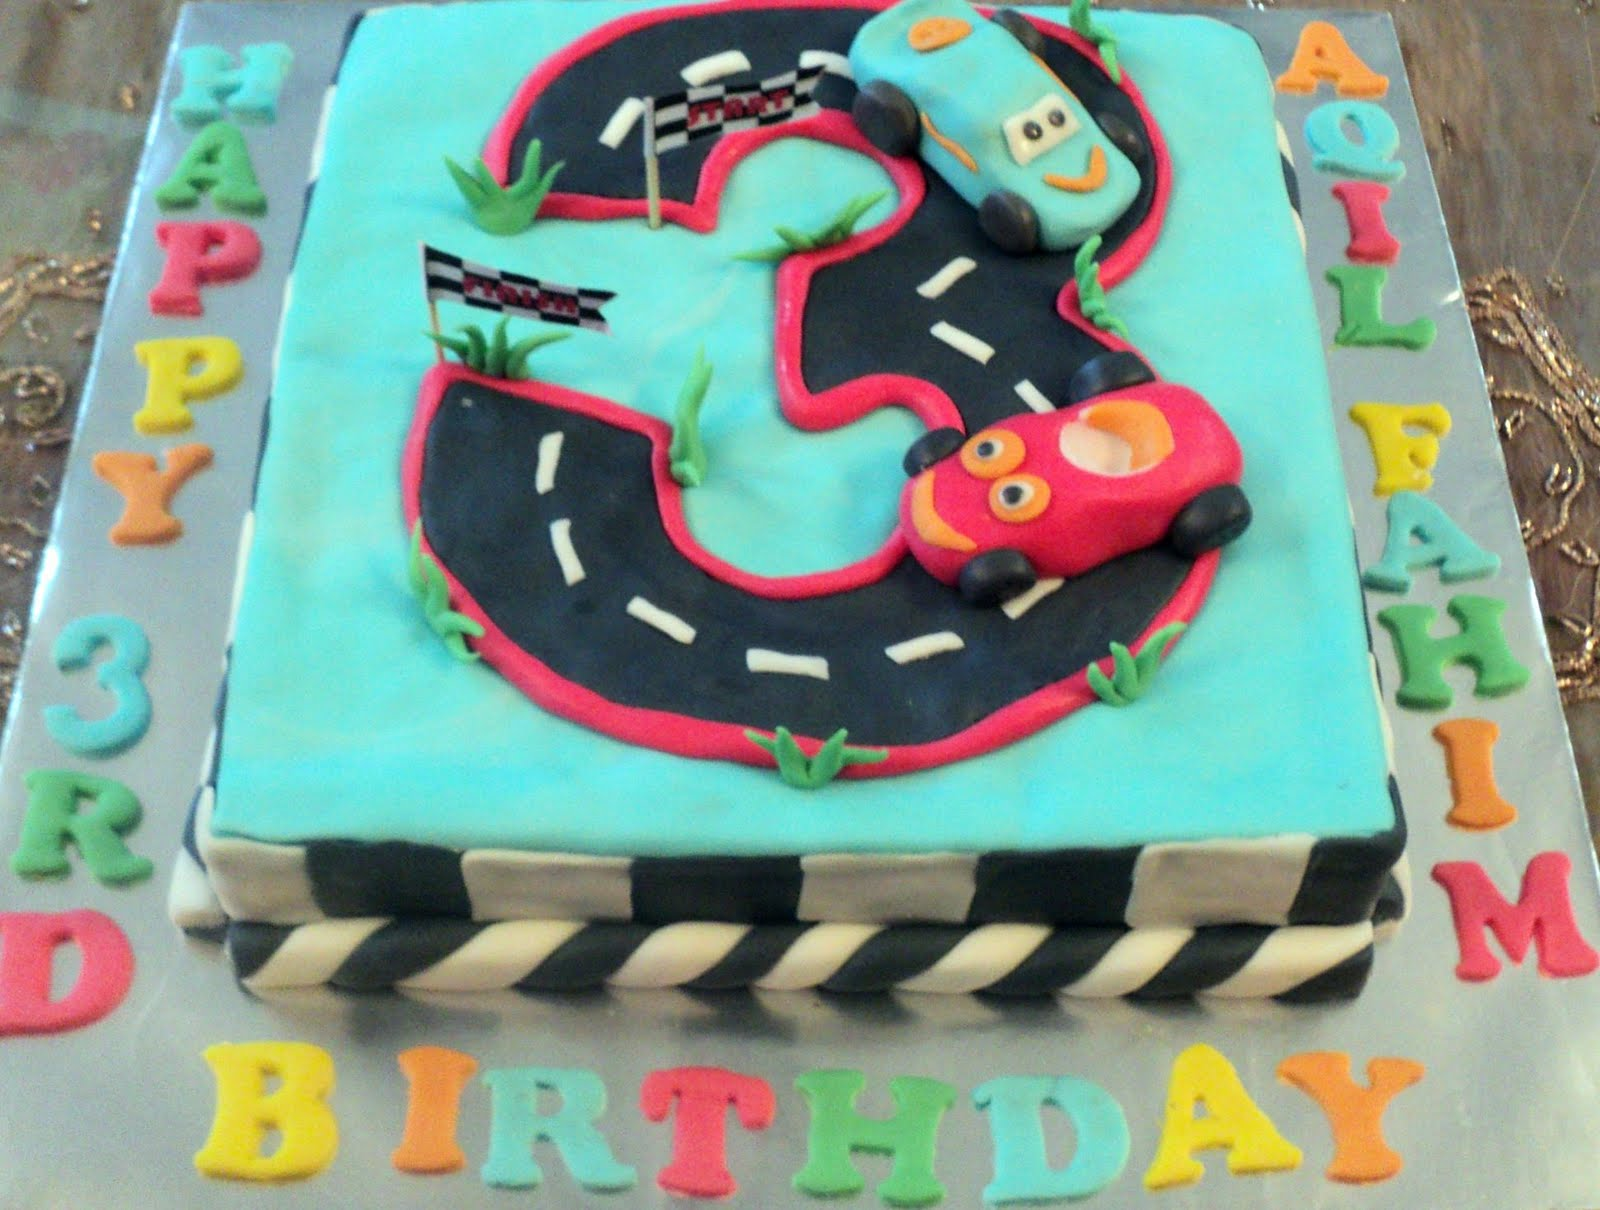 Izash Homecakes Aqil Fahims Bday Car Cake